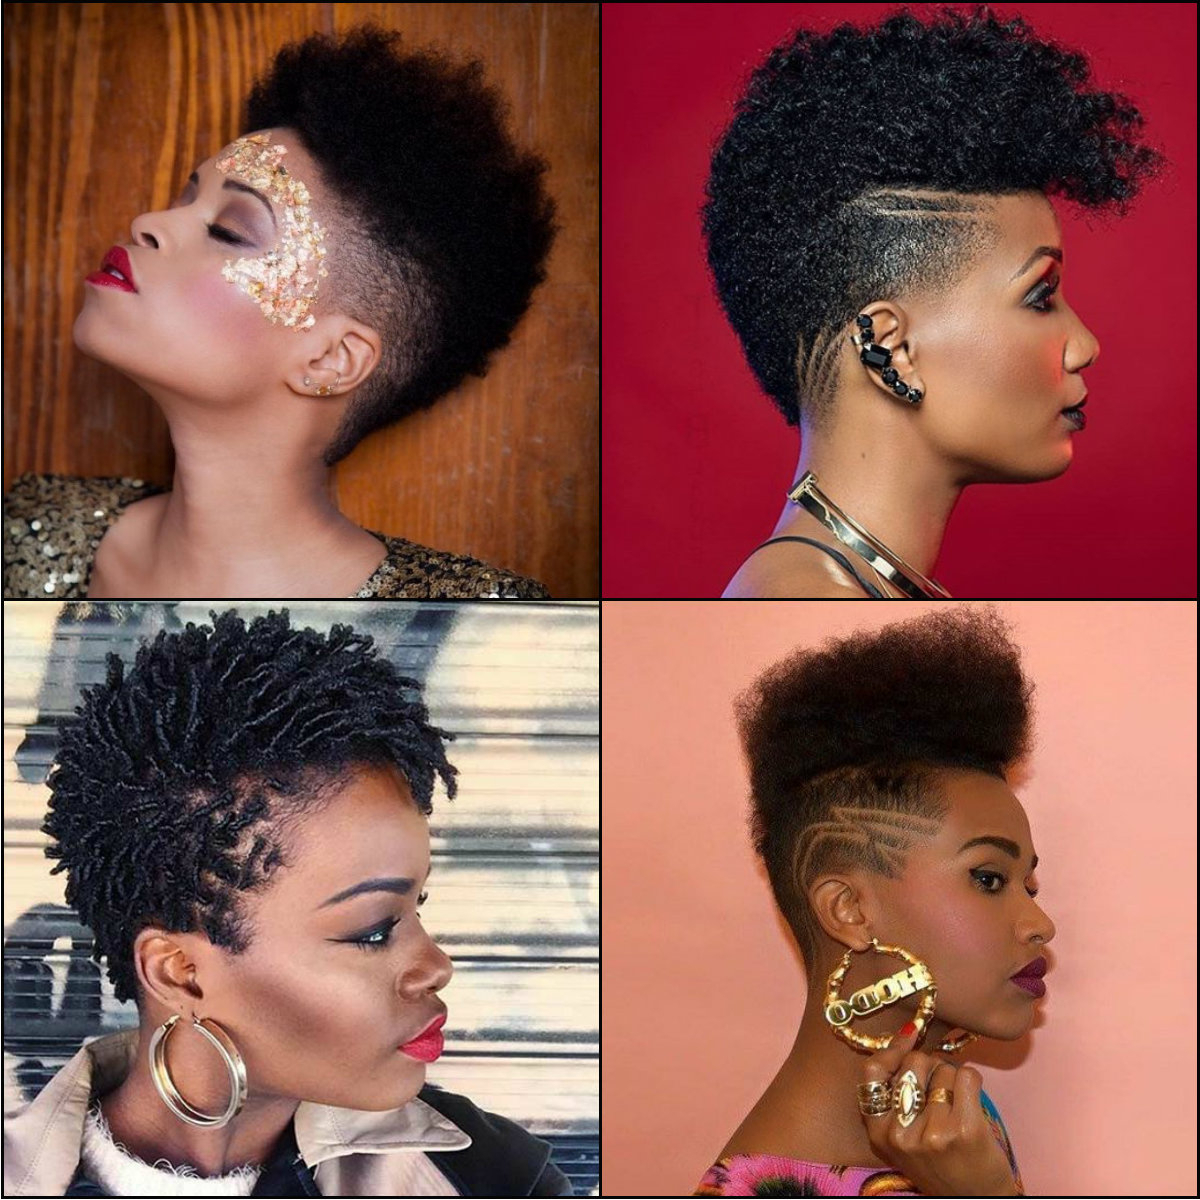 Black Women Fade Haircuts To Look Edgy And Sexy (View 6 of 20)